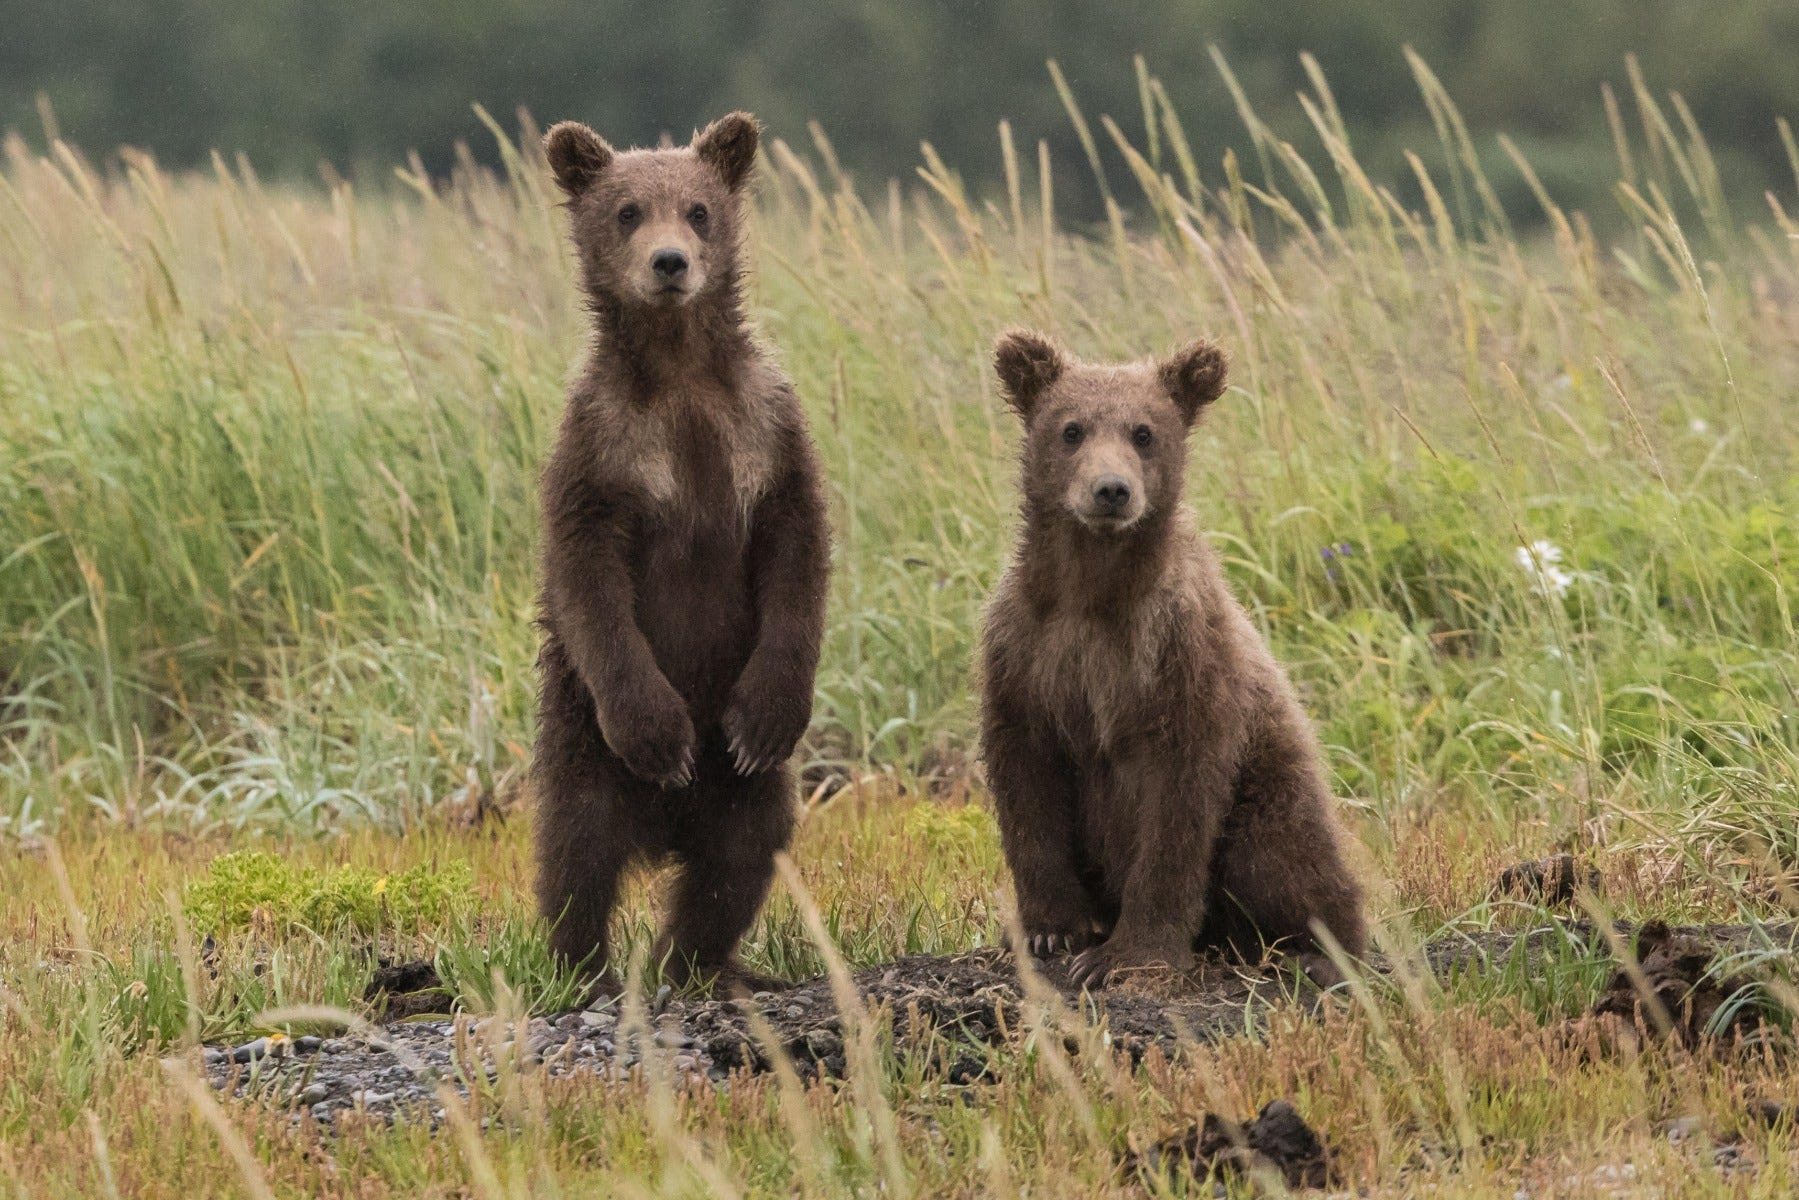 Bear cubs in nature